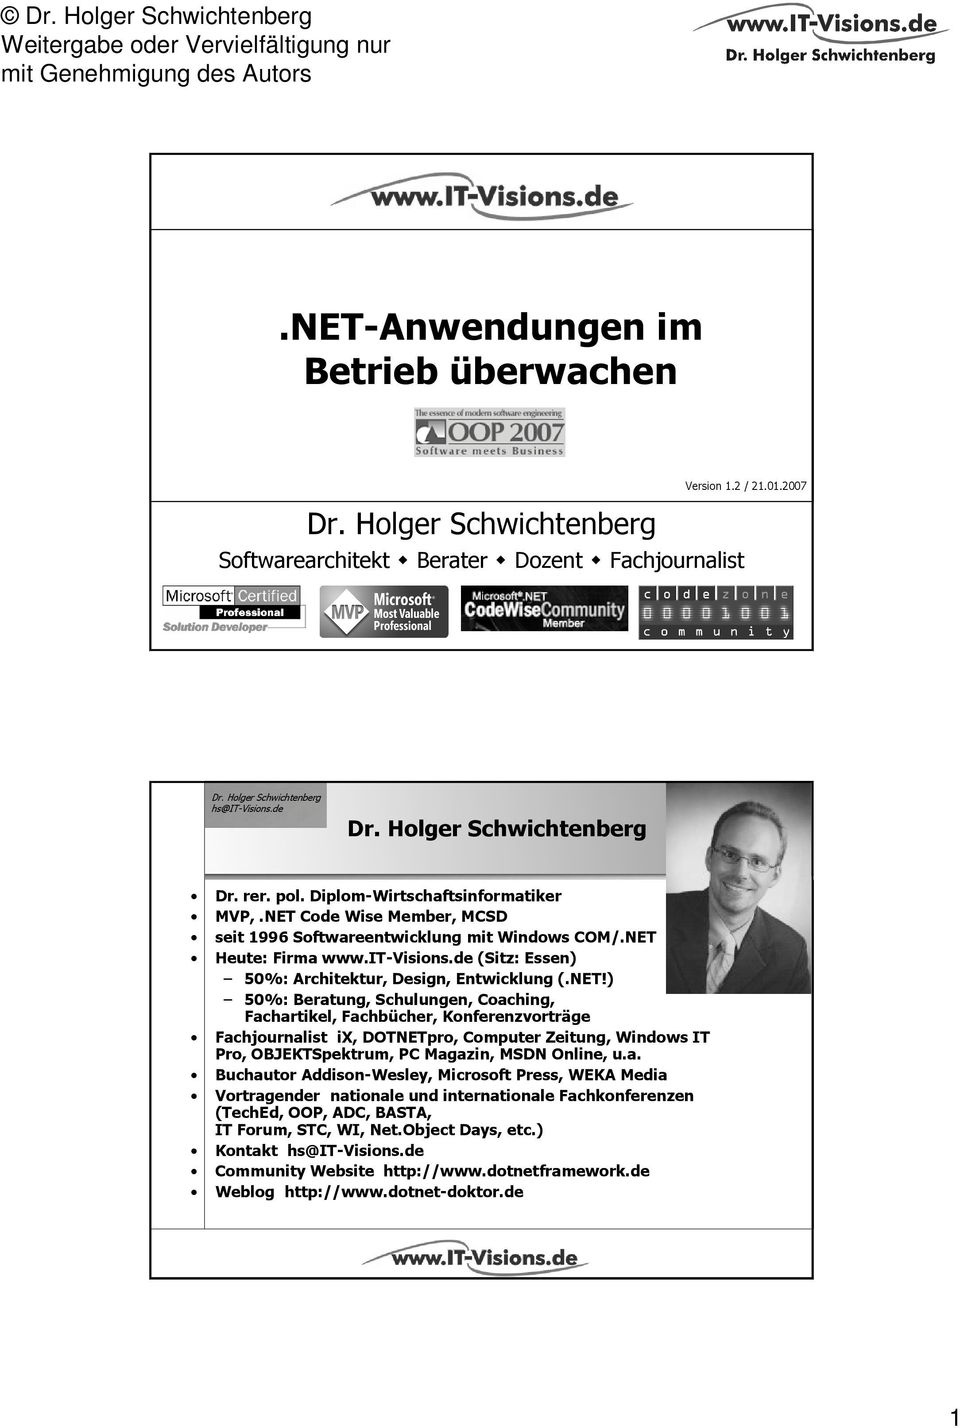 NET!) 50%: Beratung, Schulungen, Coaching, Fachartikel, Fachbücher, Konferenzvorträge Fachjournalist ix, DOTNETpro, Computer Zeitung, Windows IT Pro, OBJEKTSpektrum, PC Magazin, MSDN Online, u.a. Buchautor Addison-Wesley, Microsoft Press, WEKA Media Vortragender nationale und internationale Fachkonferenzen (TechEd, OOP, ADC, BASTA, IT Forum, STC, WI, Net.